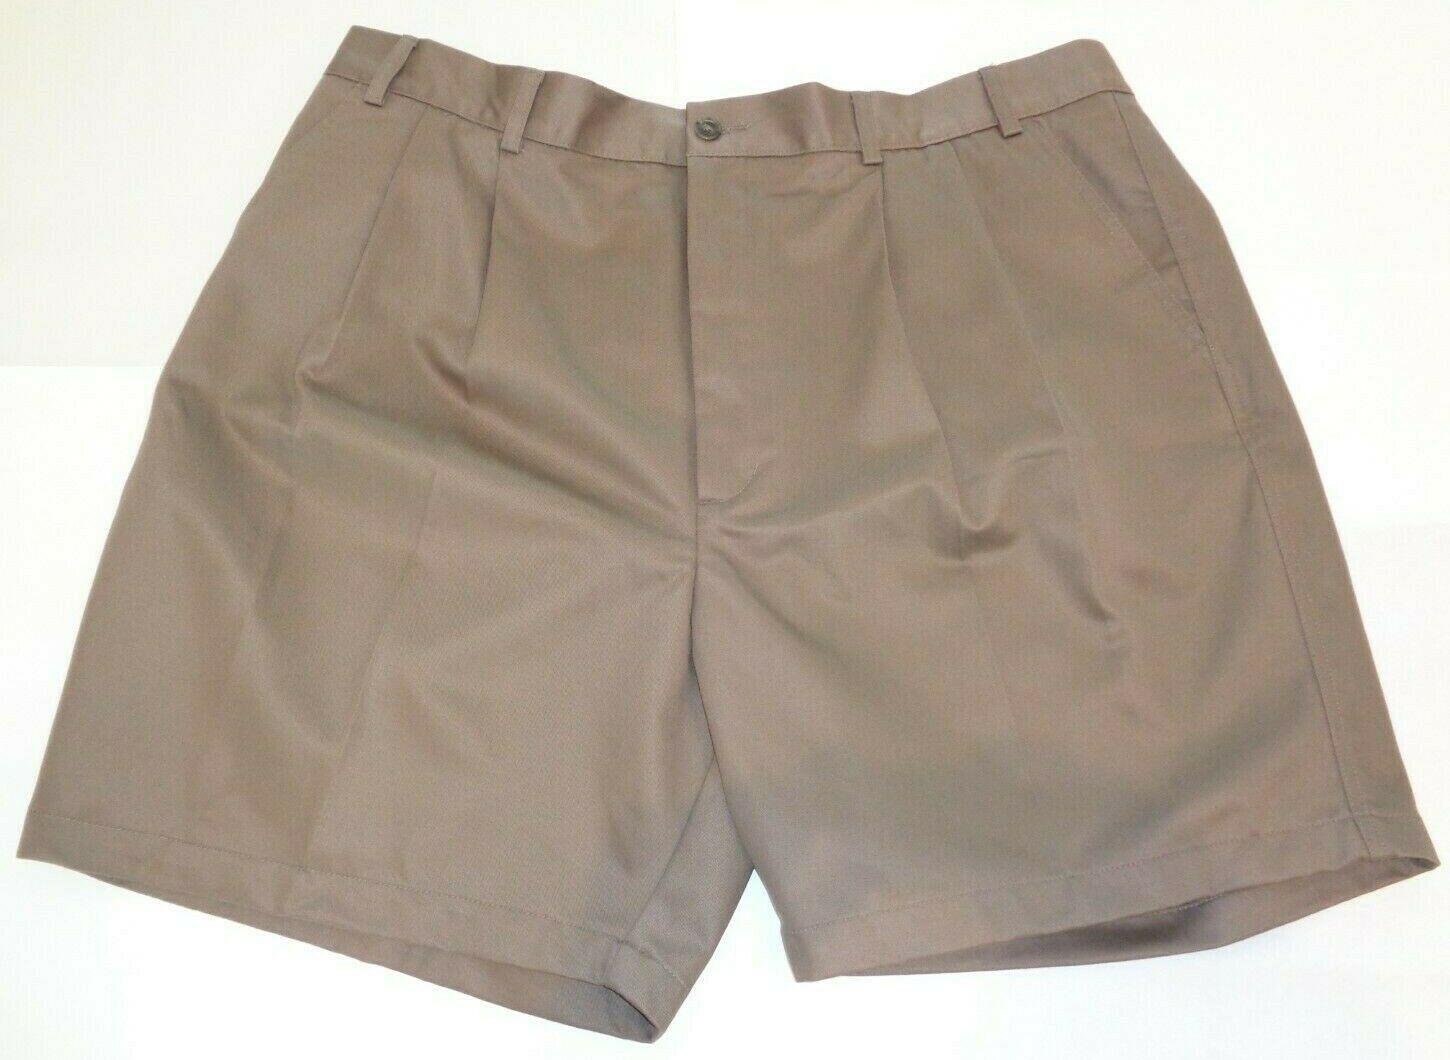 Roundtree & Yorke Size 46 ELASTIC WAIST Brown Cotton Pleated New Mens Shorts